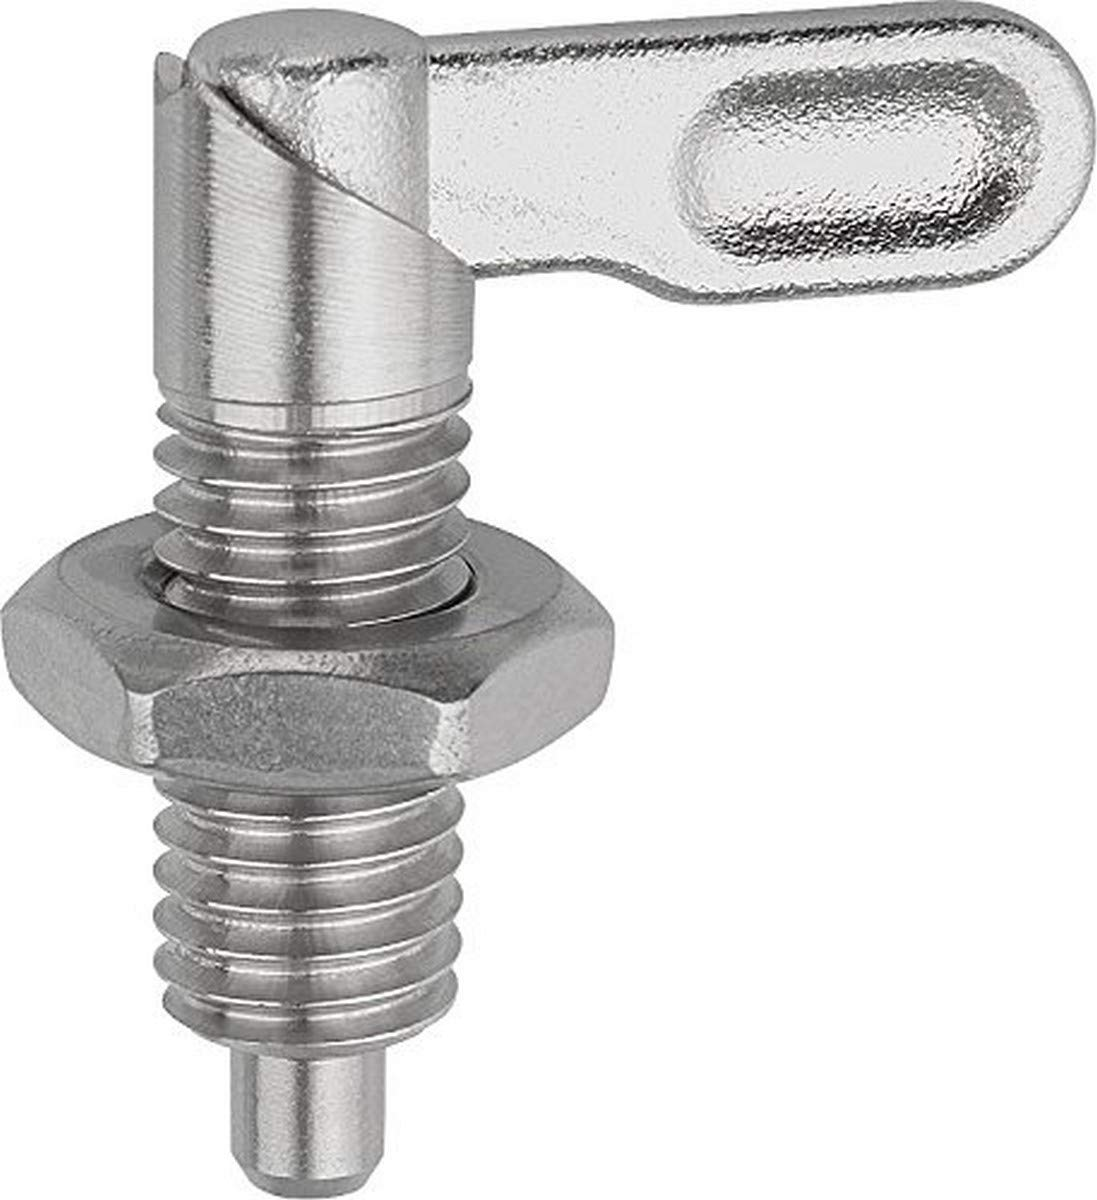 KIPP 03099-10506A6 STAINLESS STEEL CAM ACTION INDEXING PLUNGER STYLE B INCH NATURAL FINISH 6 MM LOCKING PIN DIAMETER 5 | 8-11 THREAD